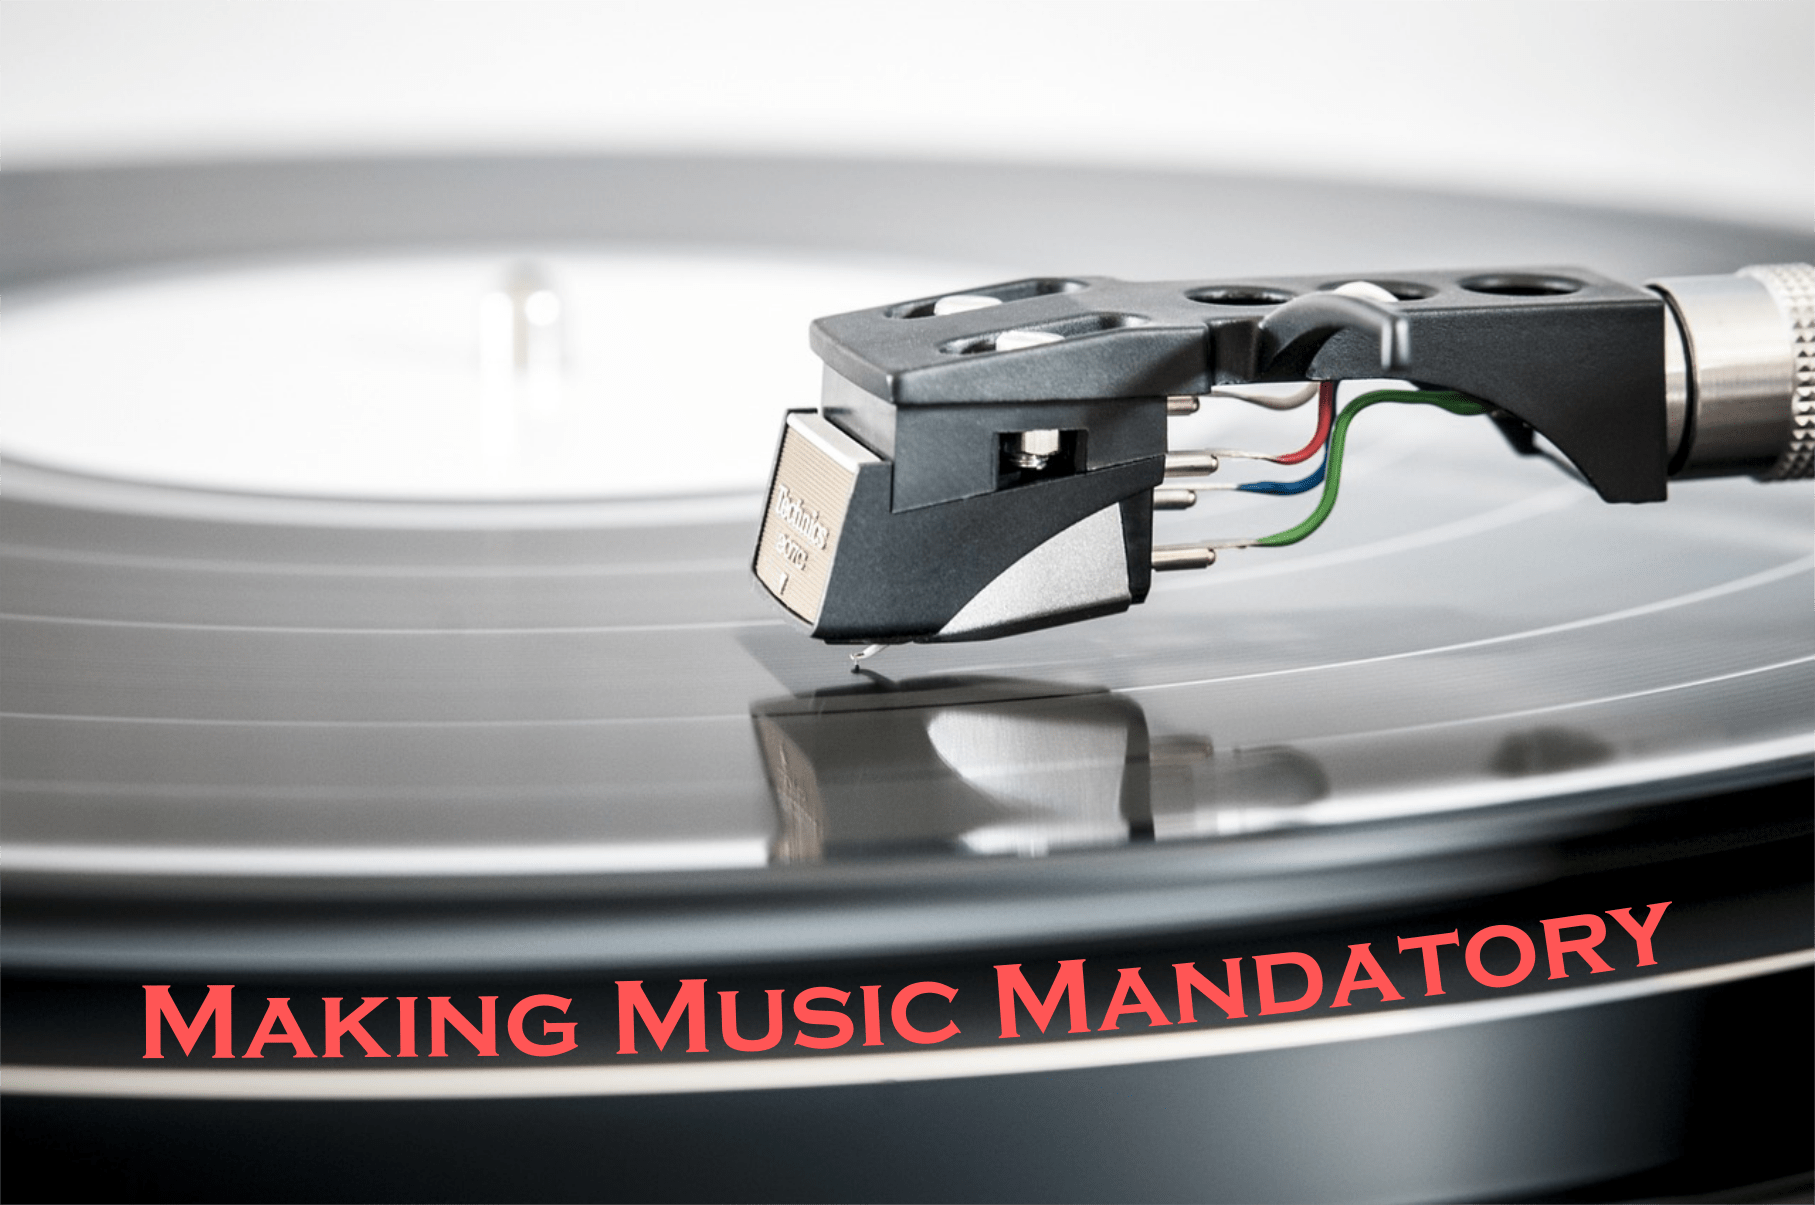 Making Music Mandatory